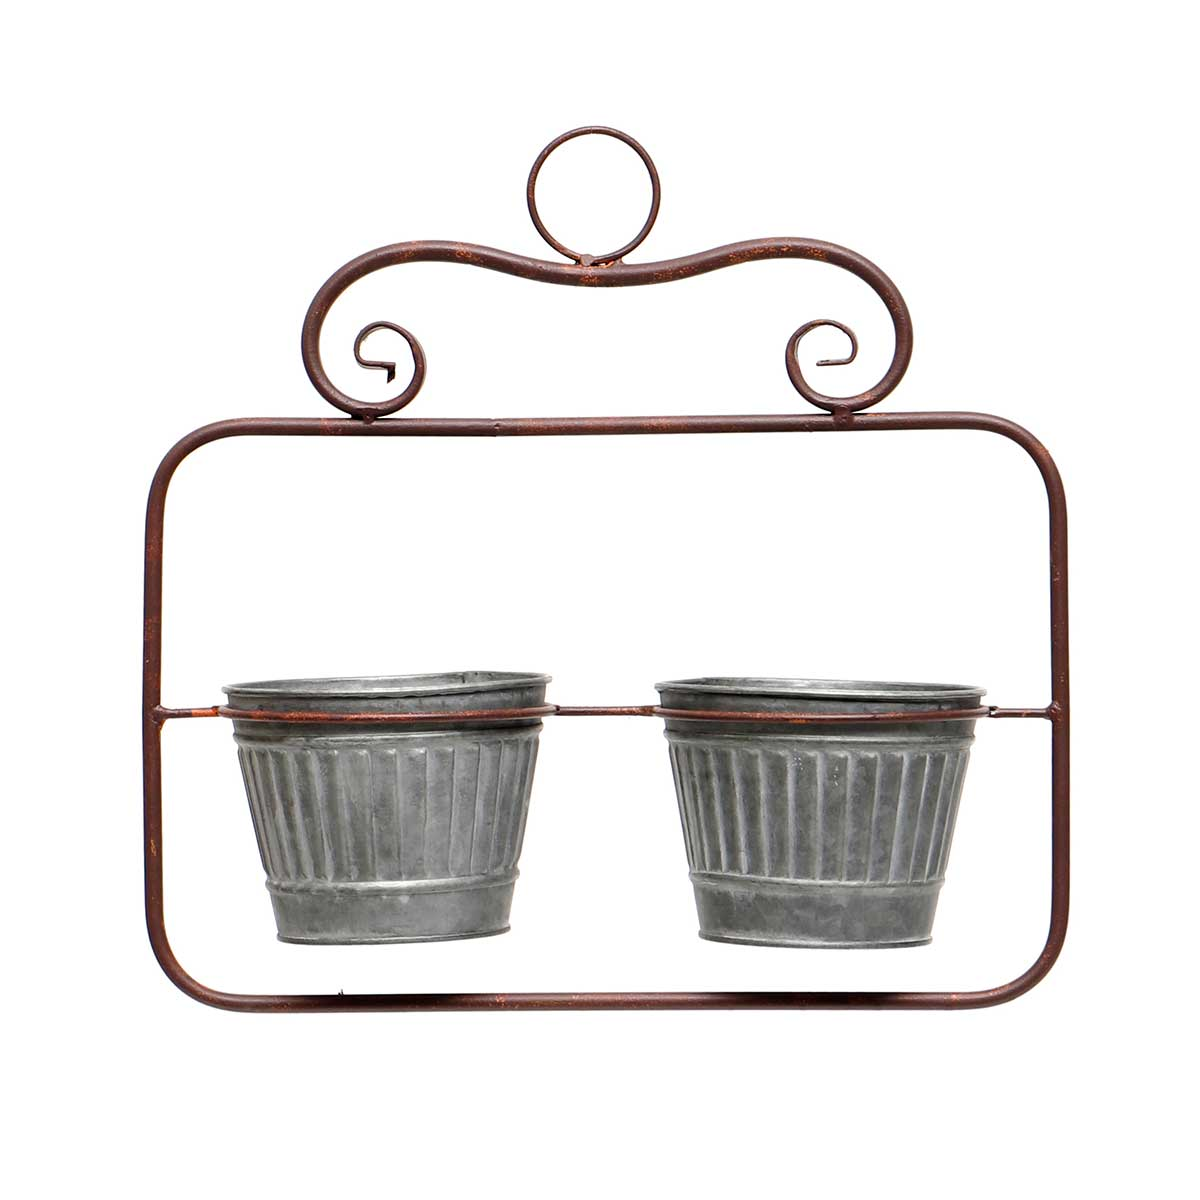 IN BLOOM METAL HANGING RECTANGLE PLANTER WITH 2 METAL